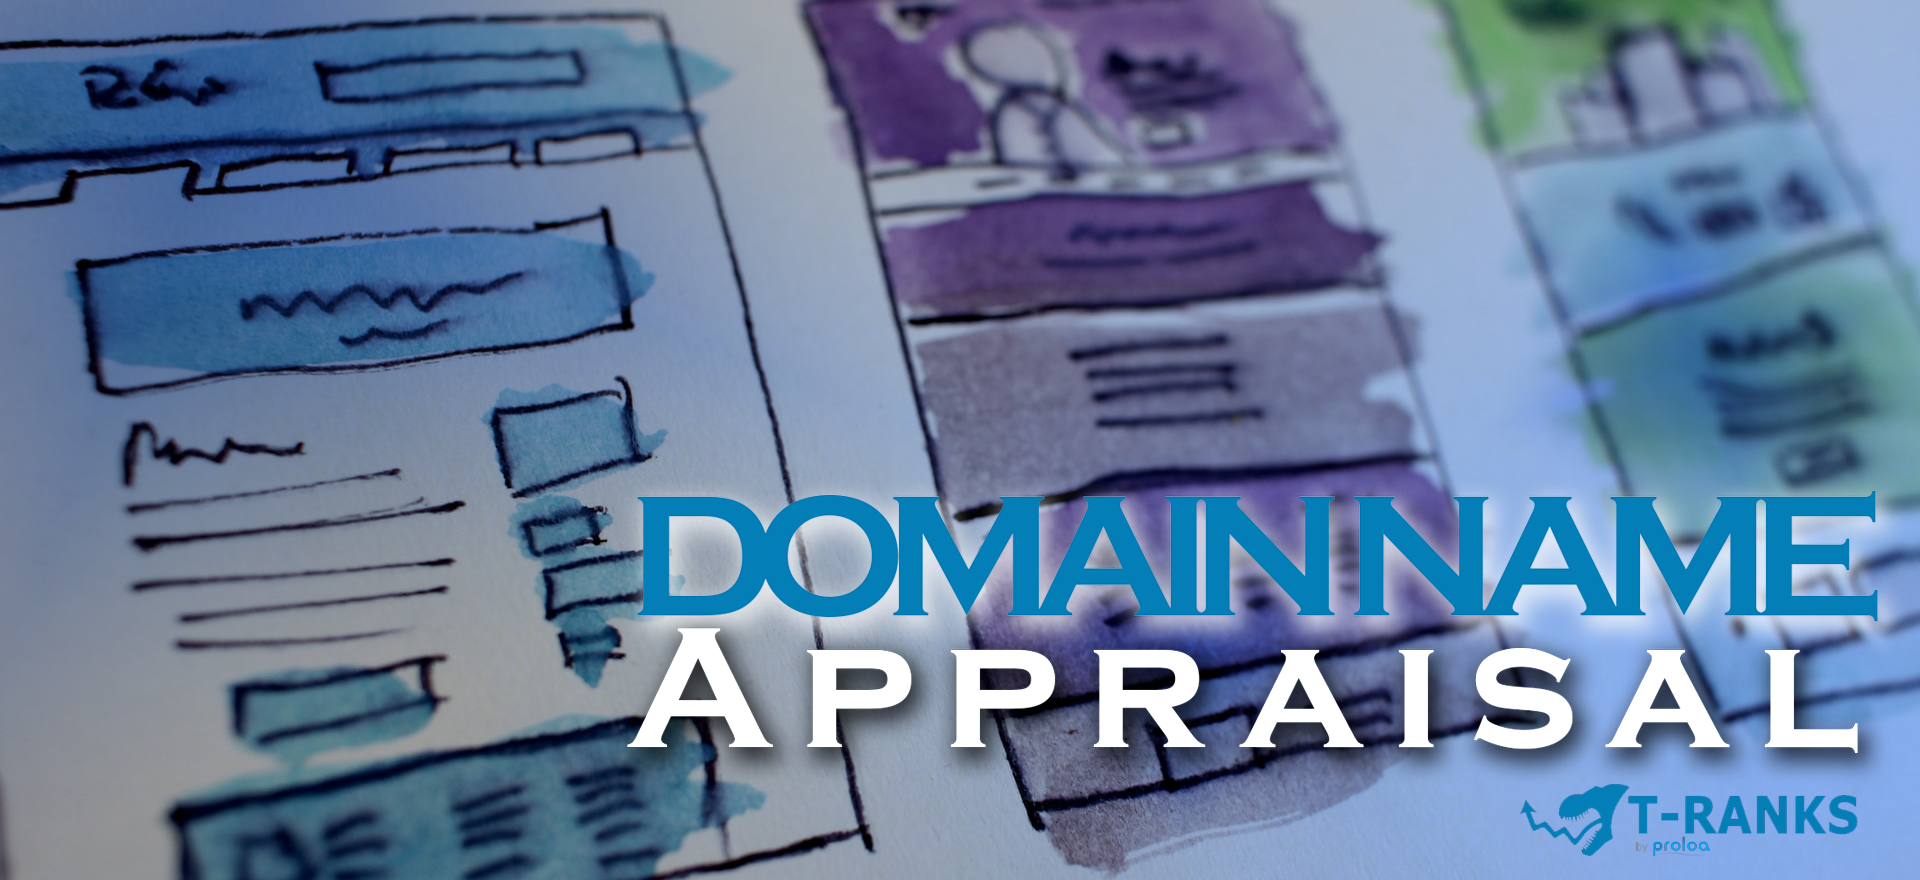 domain-name-appraisal-how-to-feat